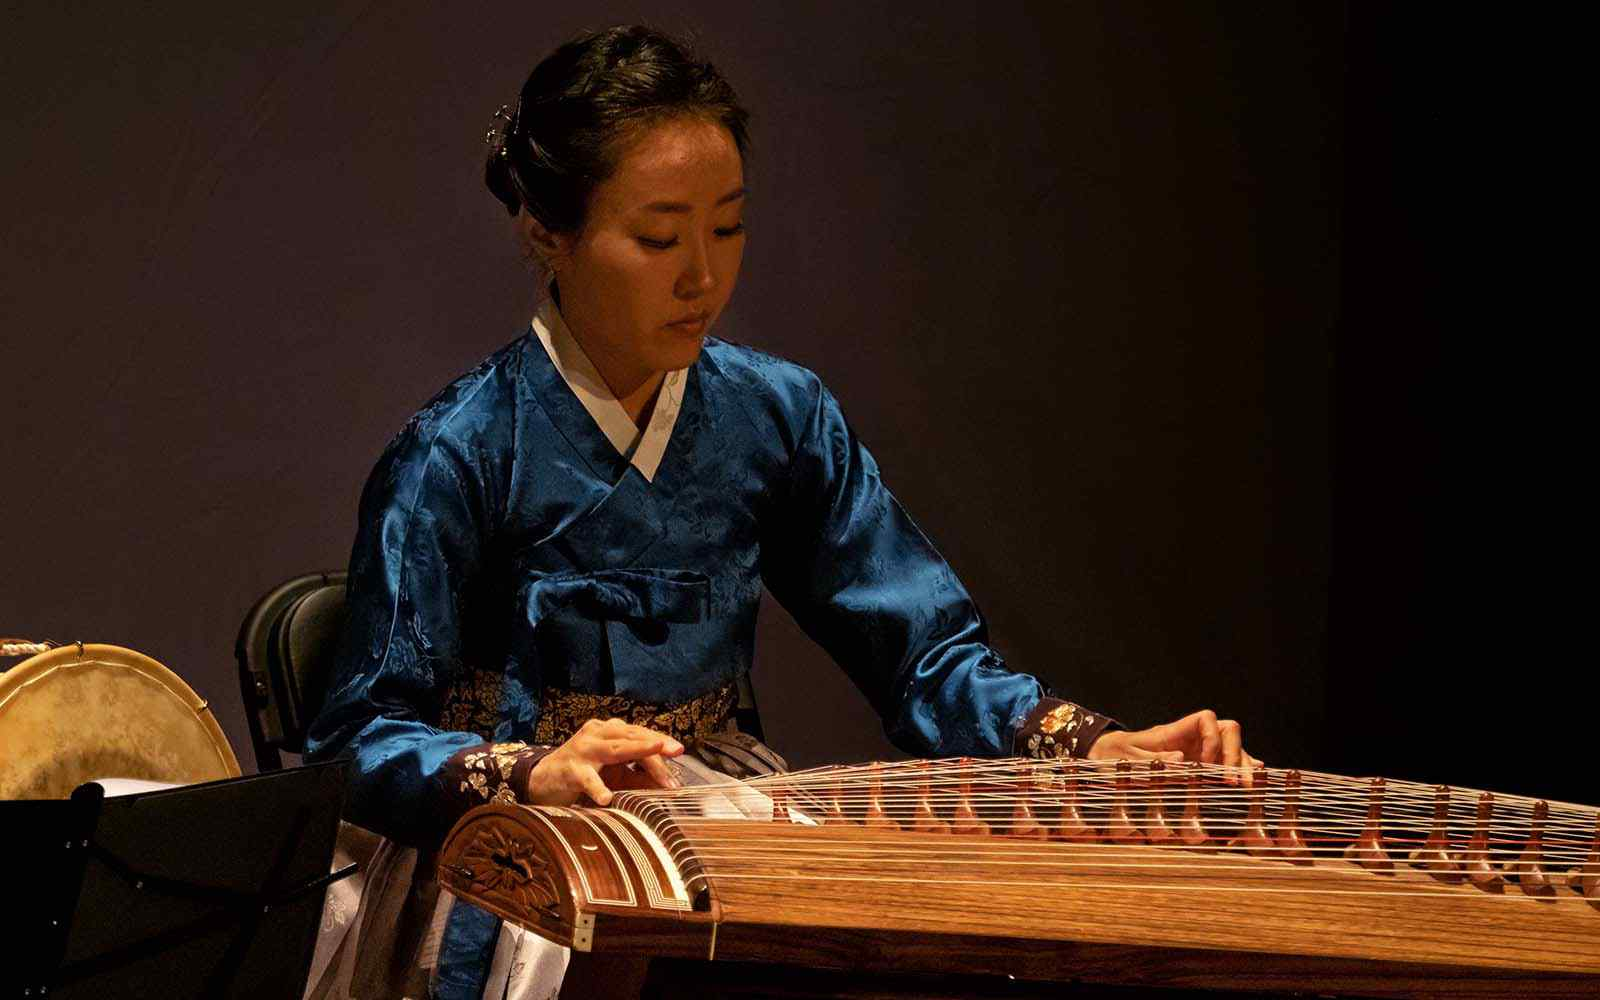 Korean musician playing traditional instrument